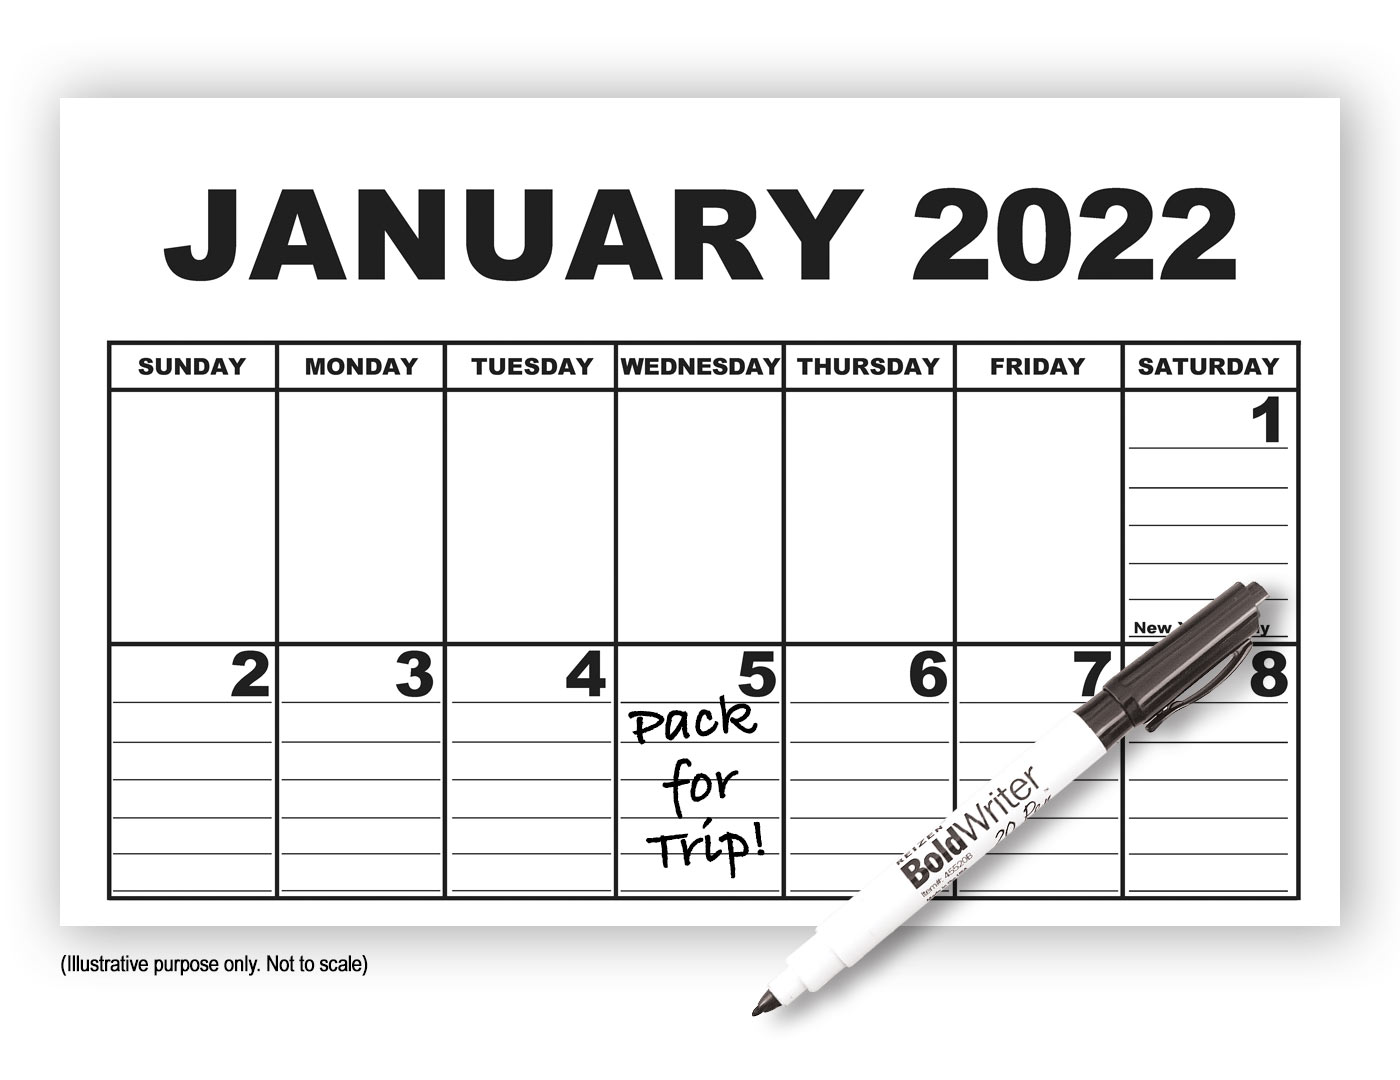 Giant Appointment Calendar 2022 with Pen